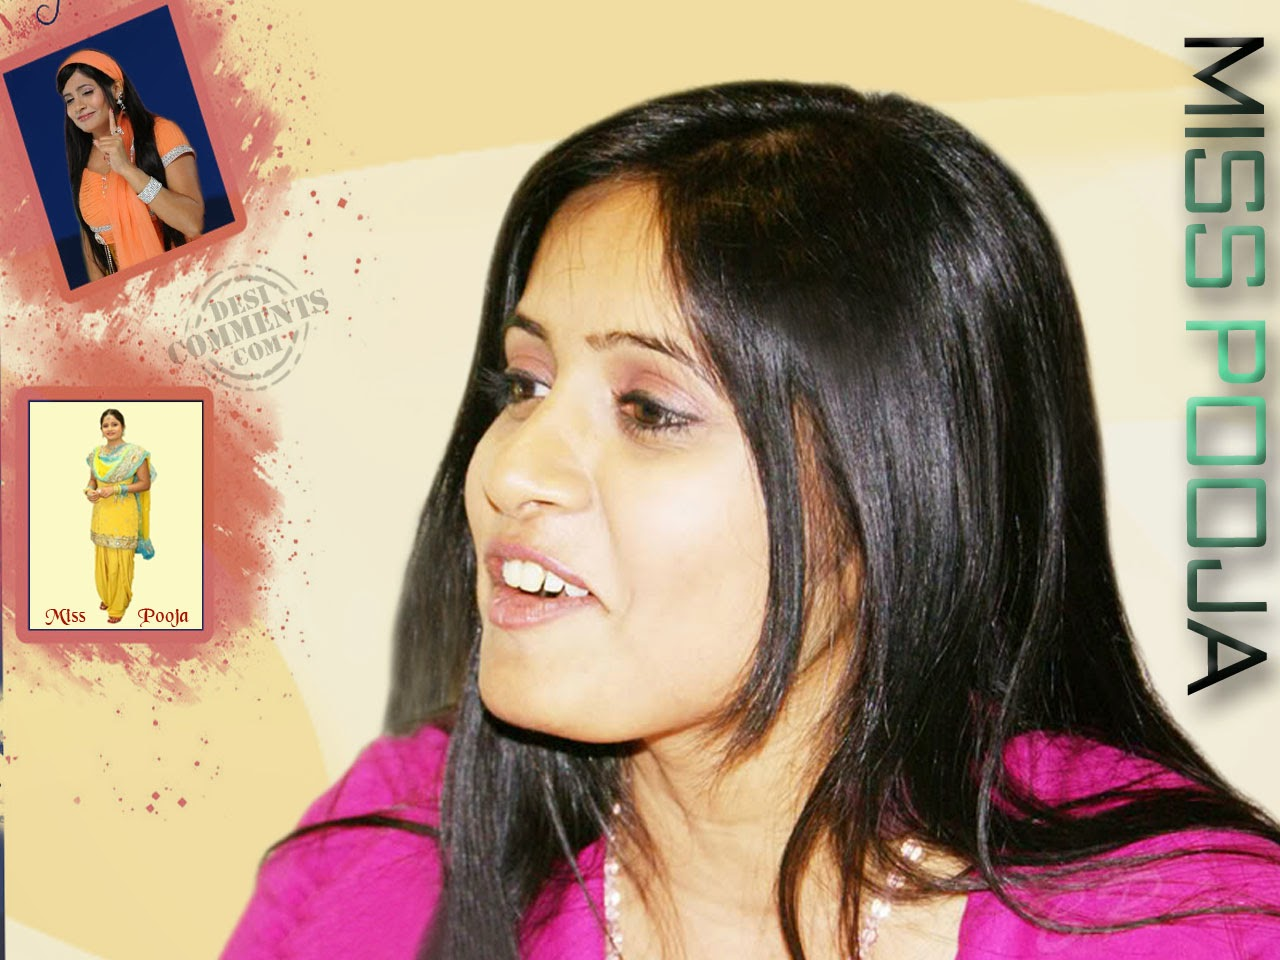 Really surprises. xxx miss pooja photos all not